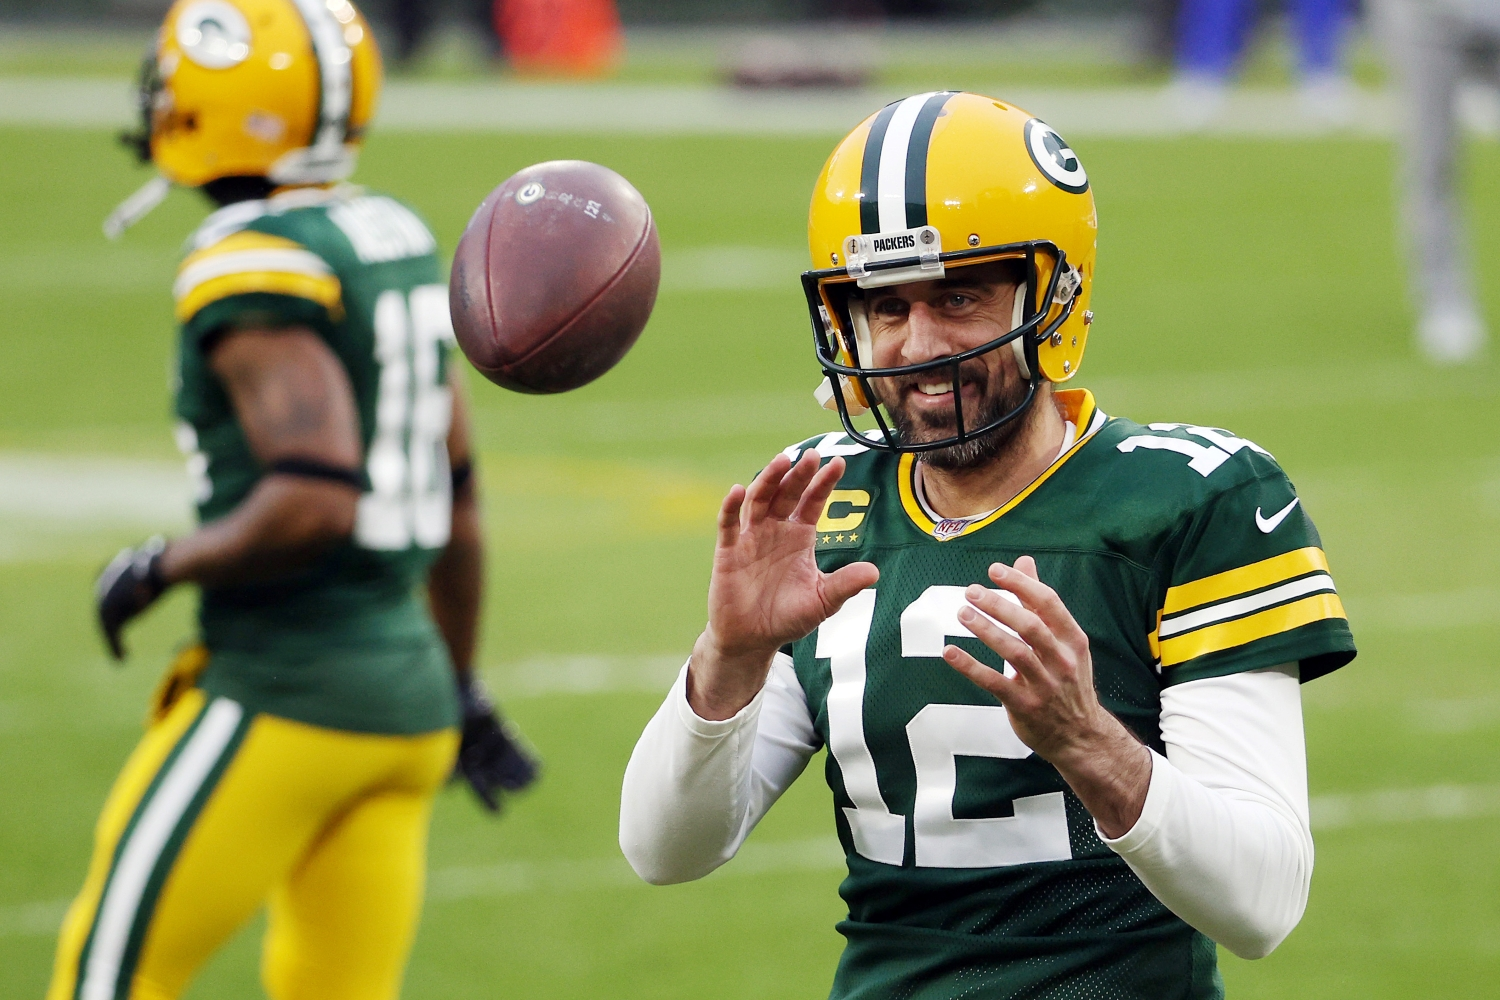 Aaron Rodgers of the Green Bay Packers warms up before the NFC Divisional Playoff game against the Los Angeles Rams.